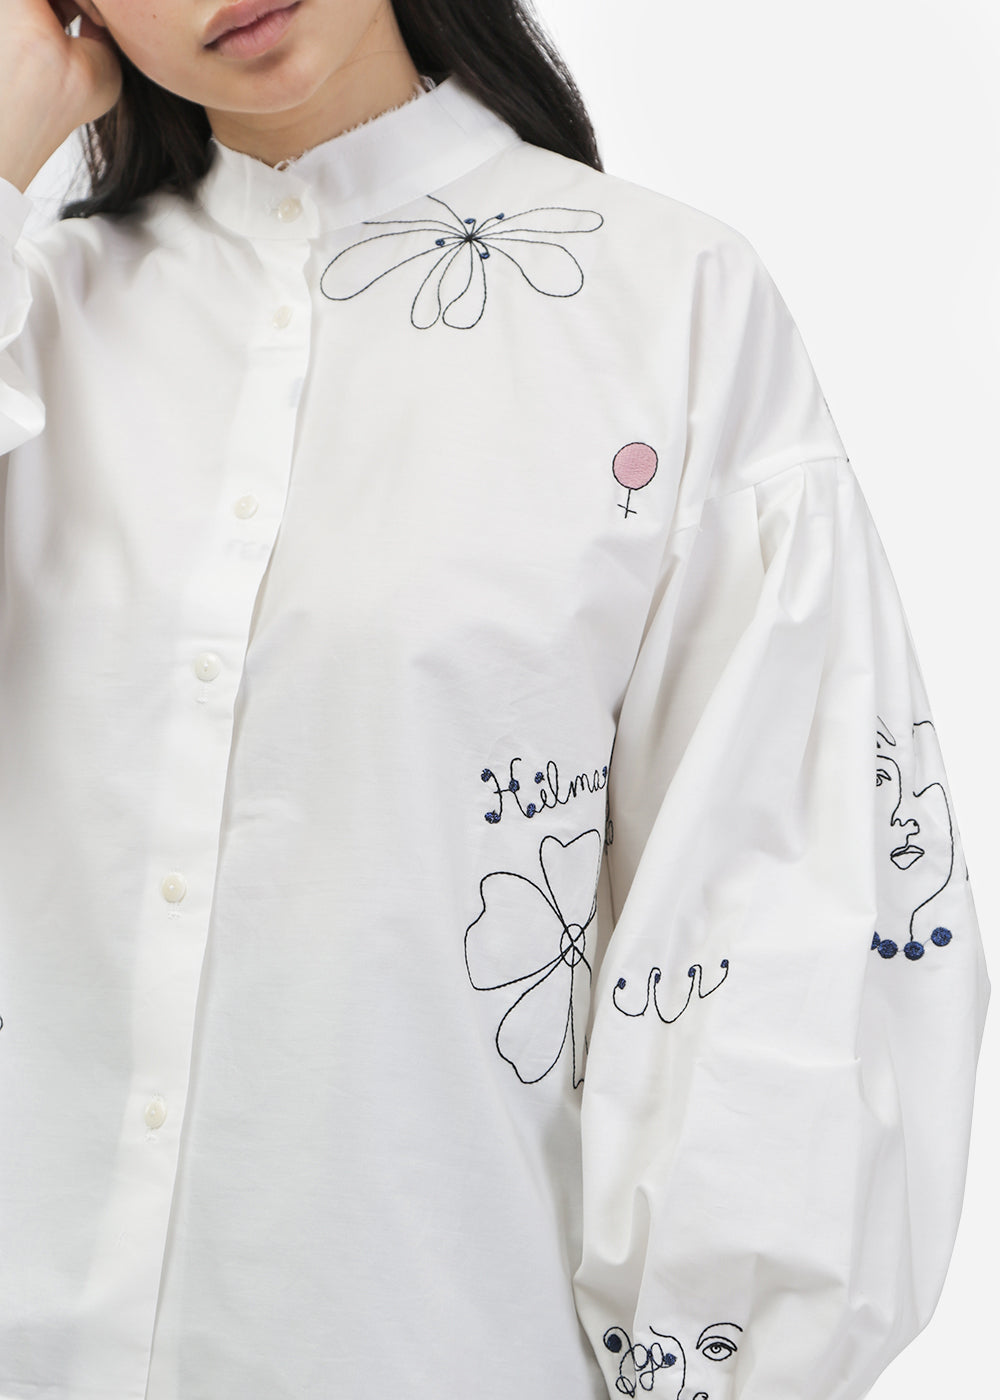 Mr. Larkin Poppy Cut Shirt — Shop sustainable fashion and slow fashion at New Classics Studios